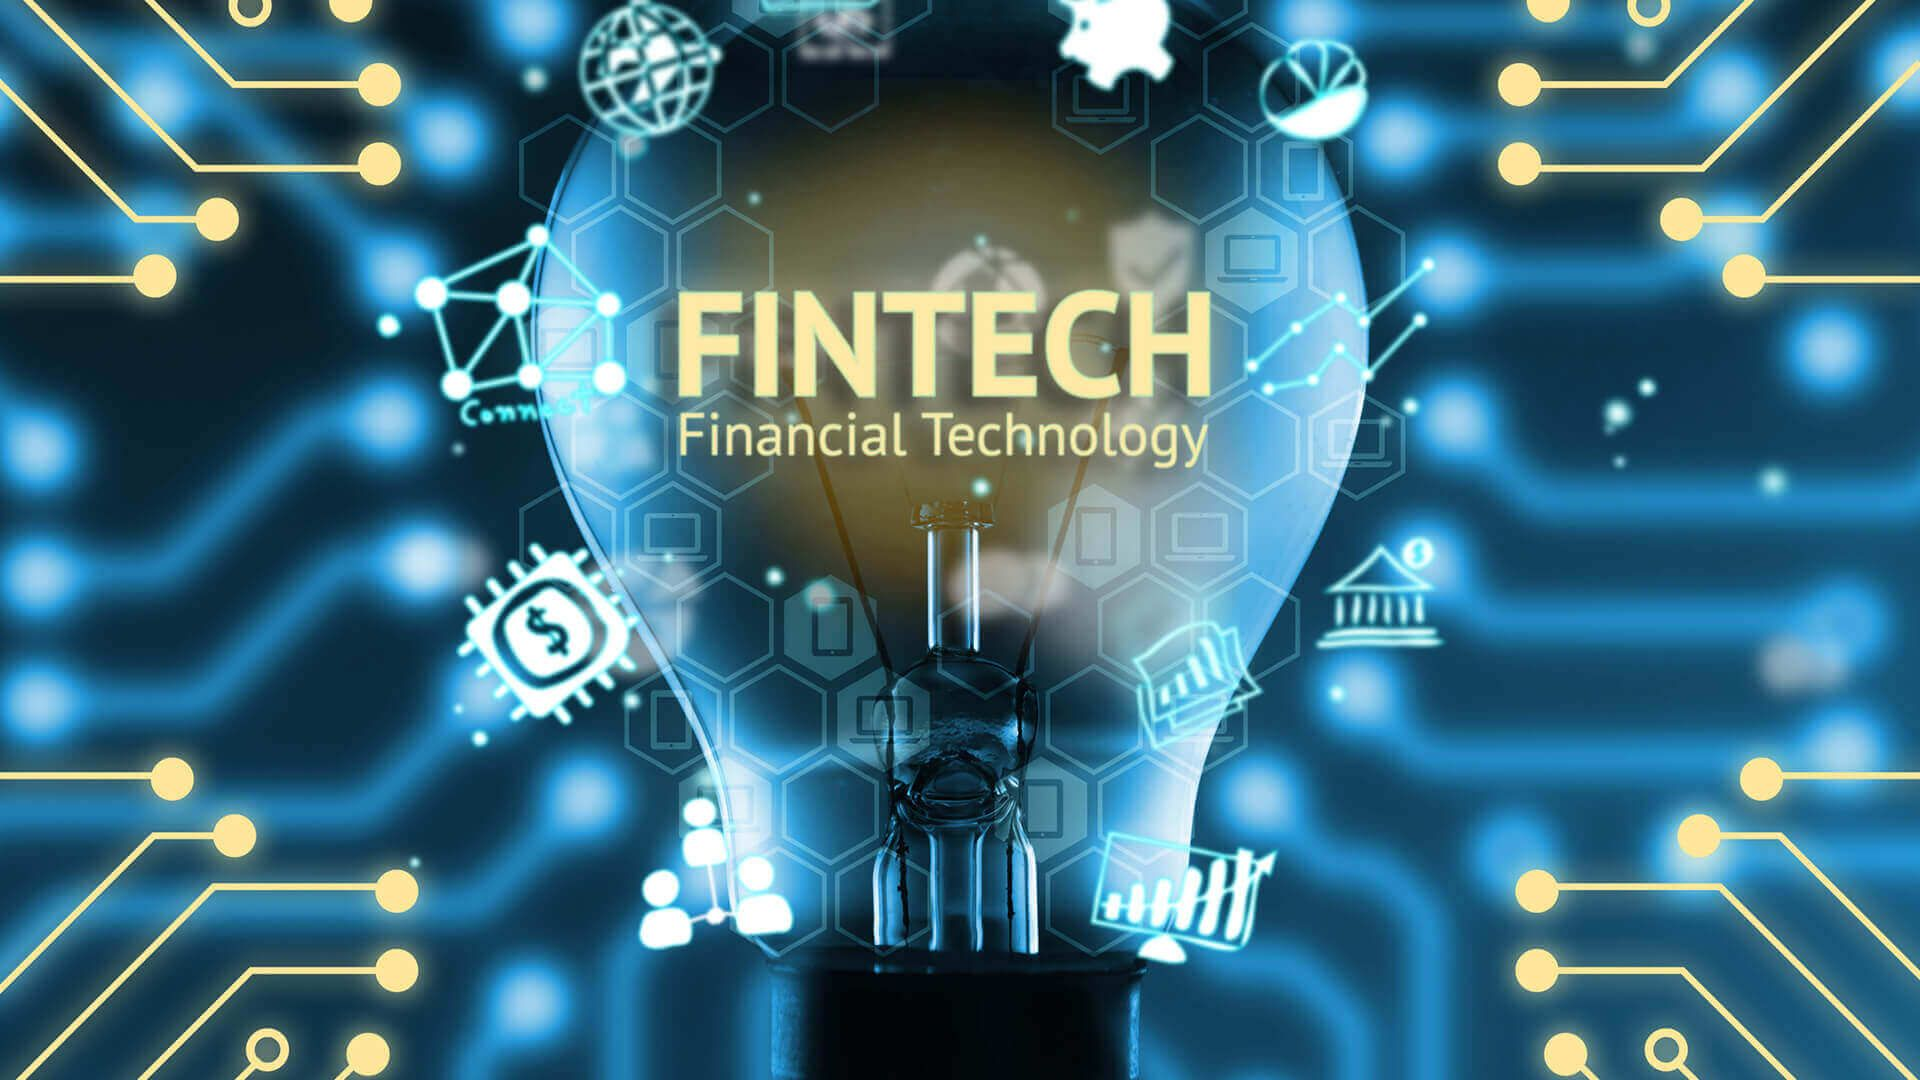 Financial area regulators are all bringing initiatives to